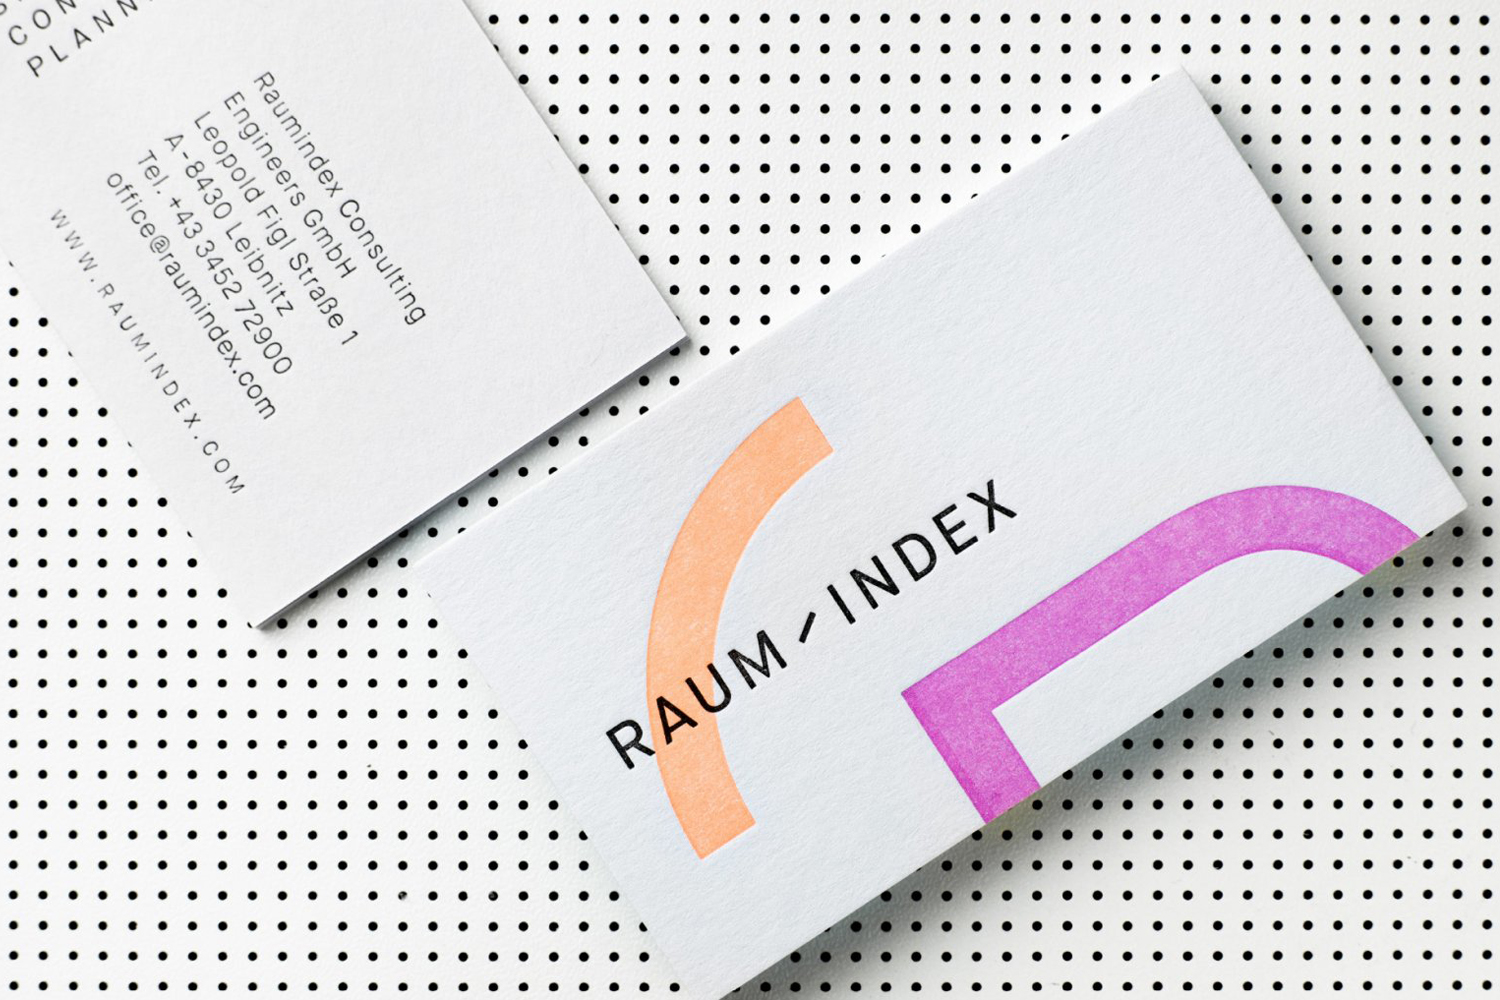 The Best Creative Business Cards 2017 – Raumindex by Moodley, Austria